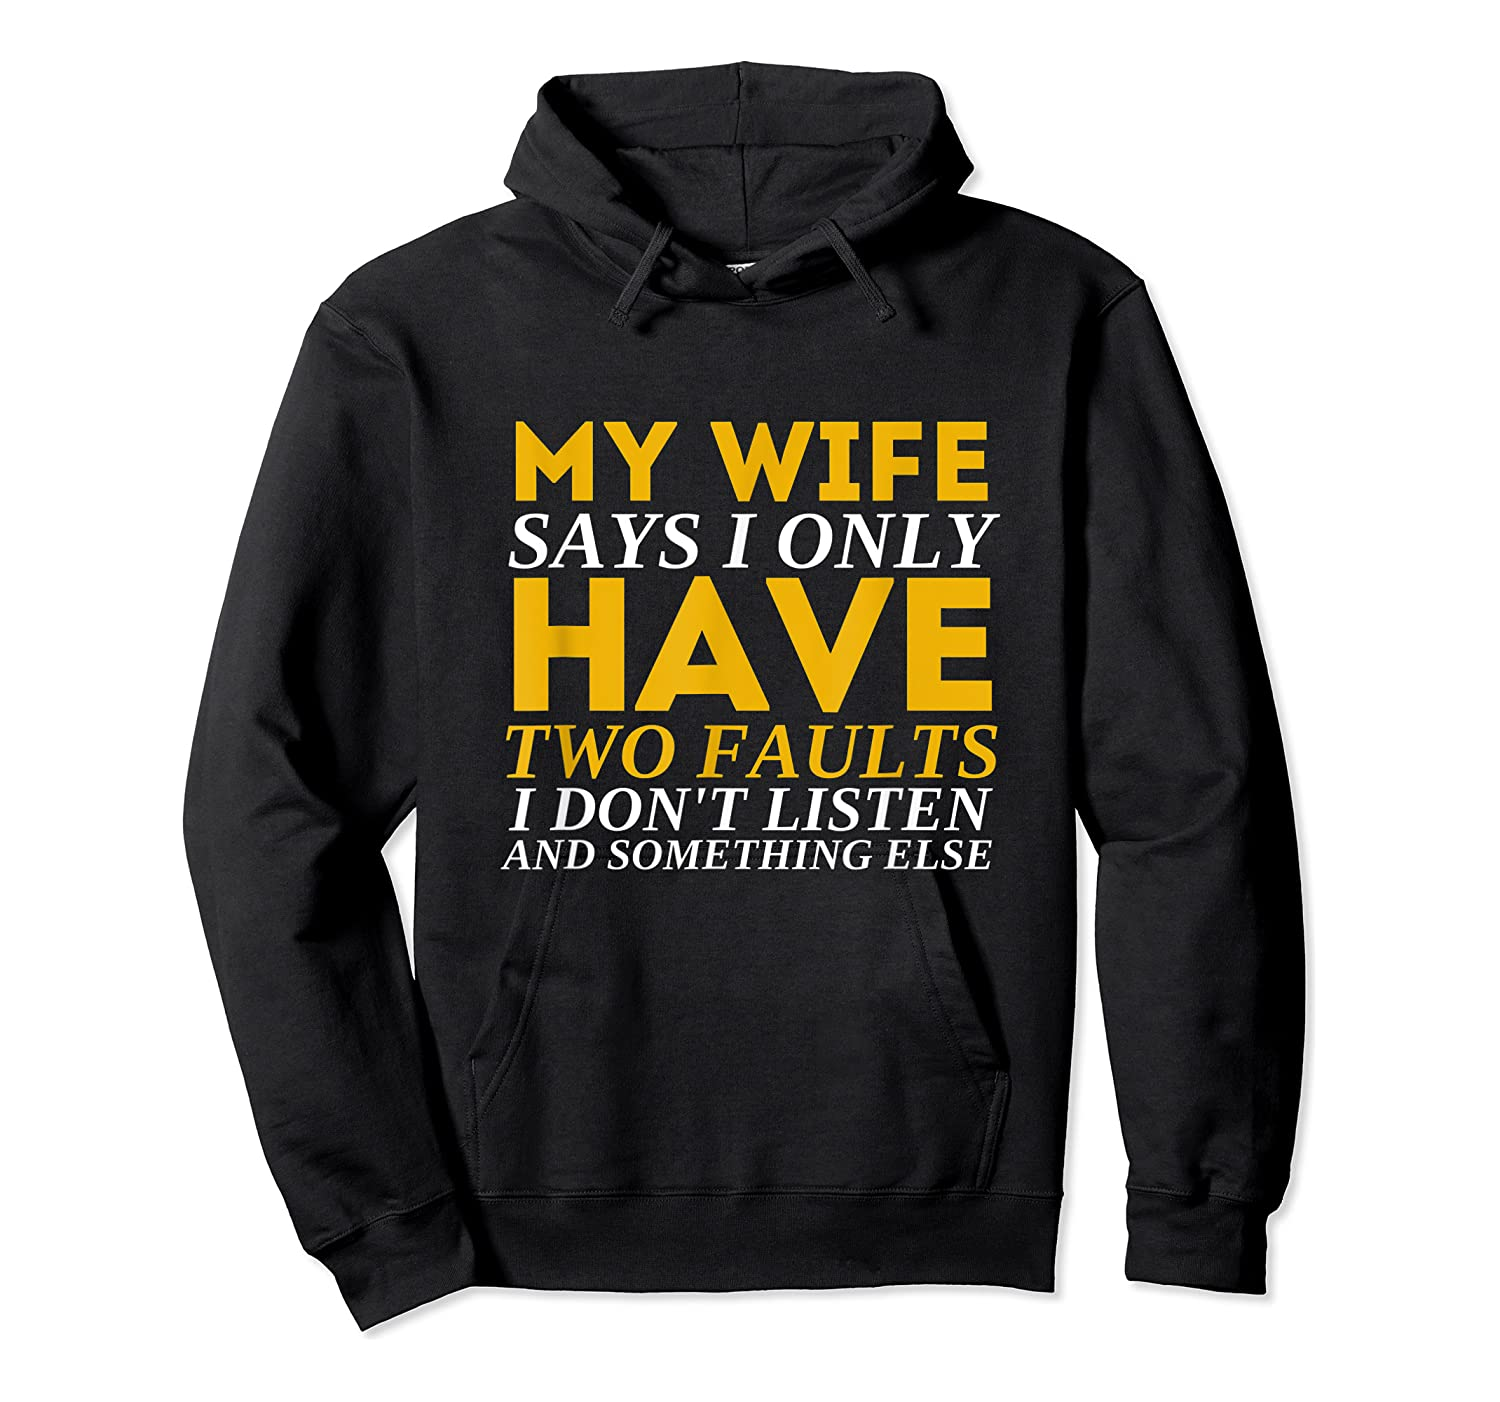 My Wife Says I Only Have Two Faults Funny Husband Shirts Unisex Pullover Hoodie